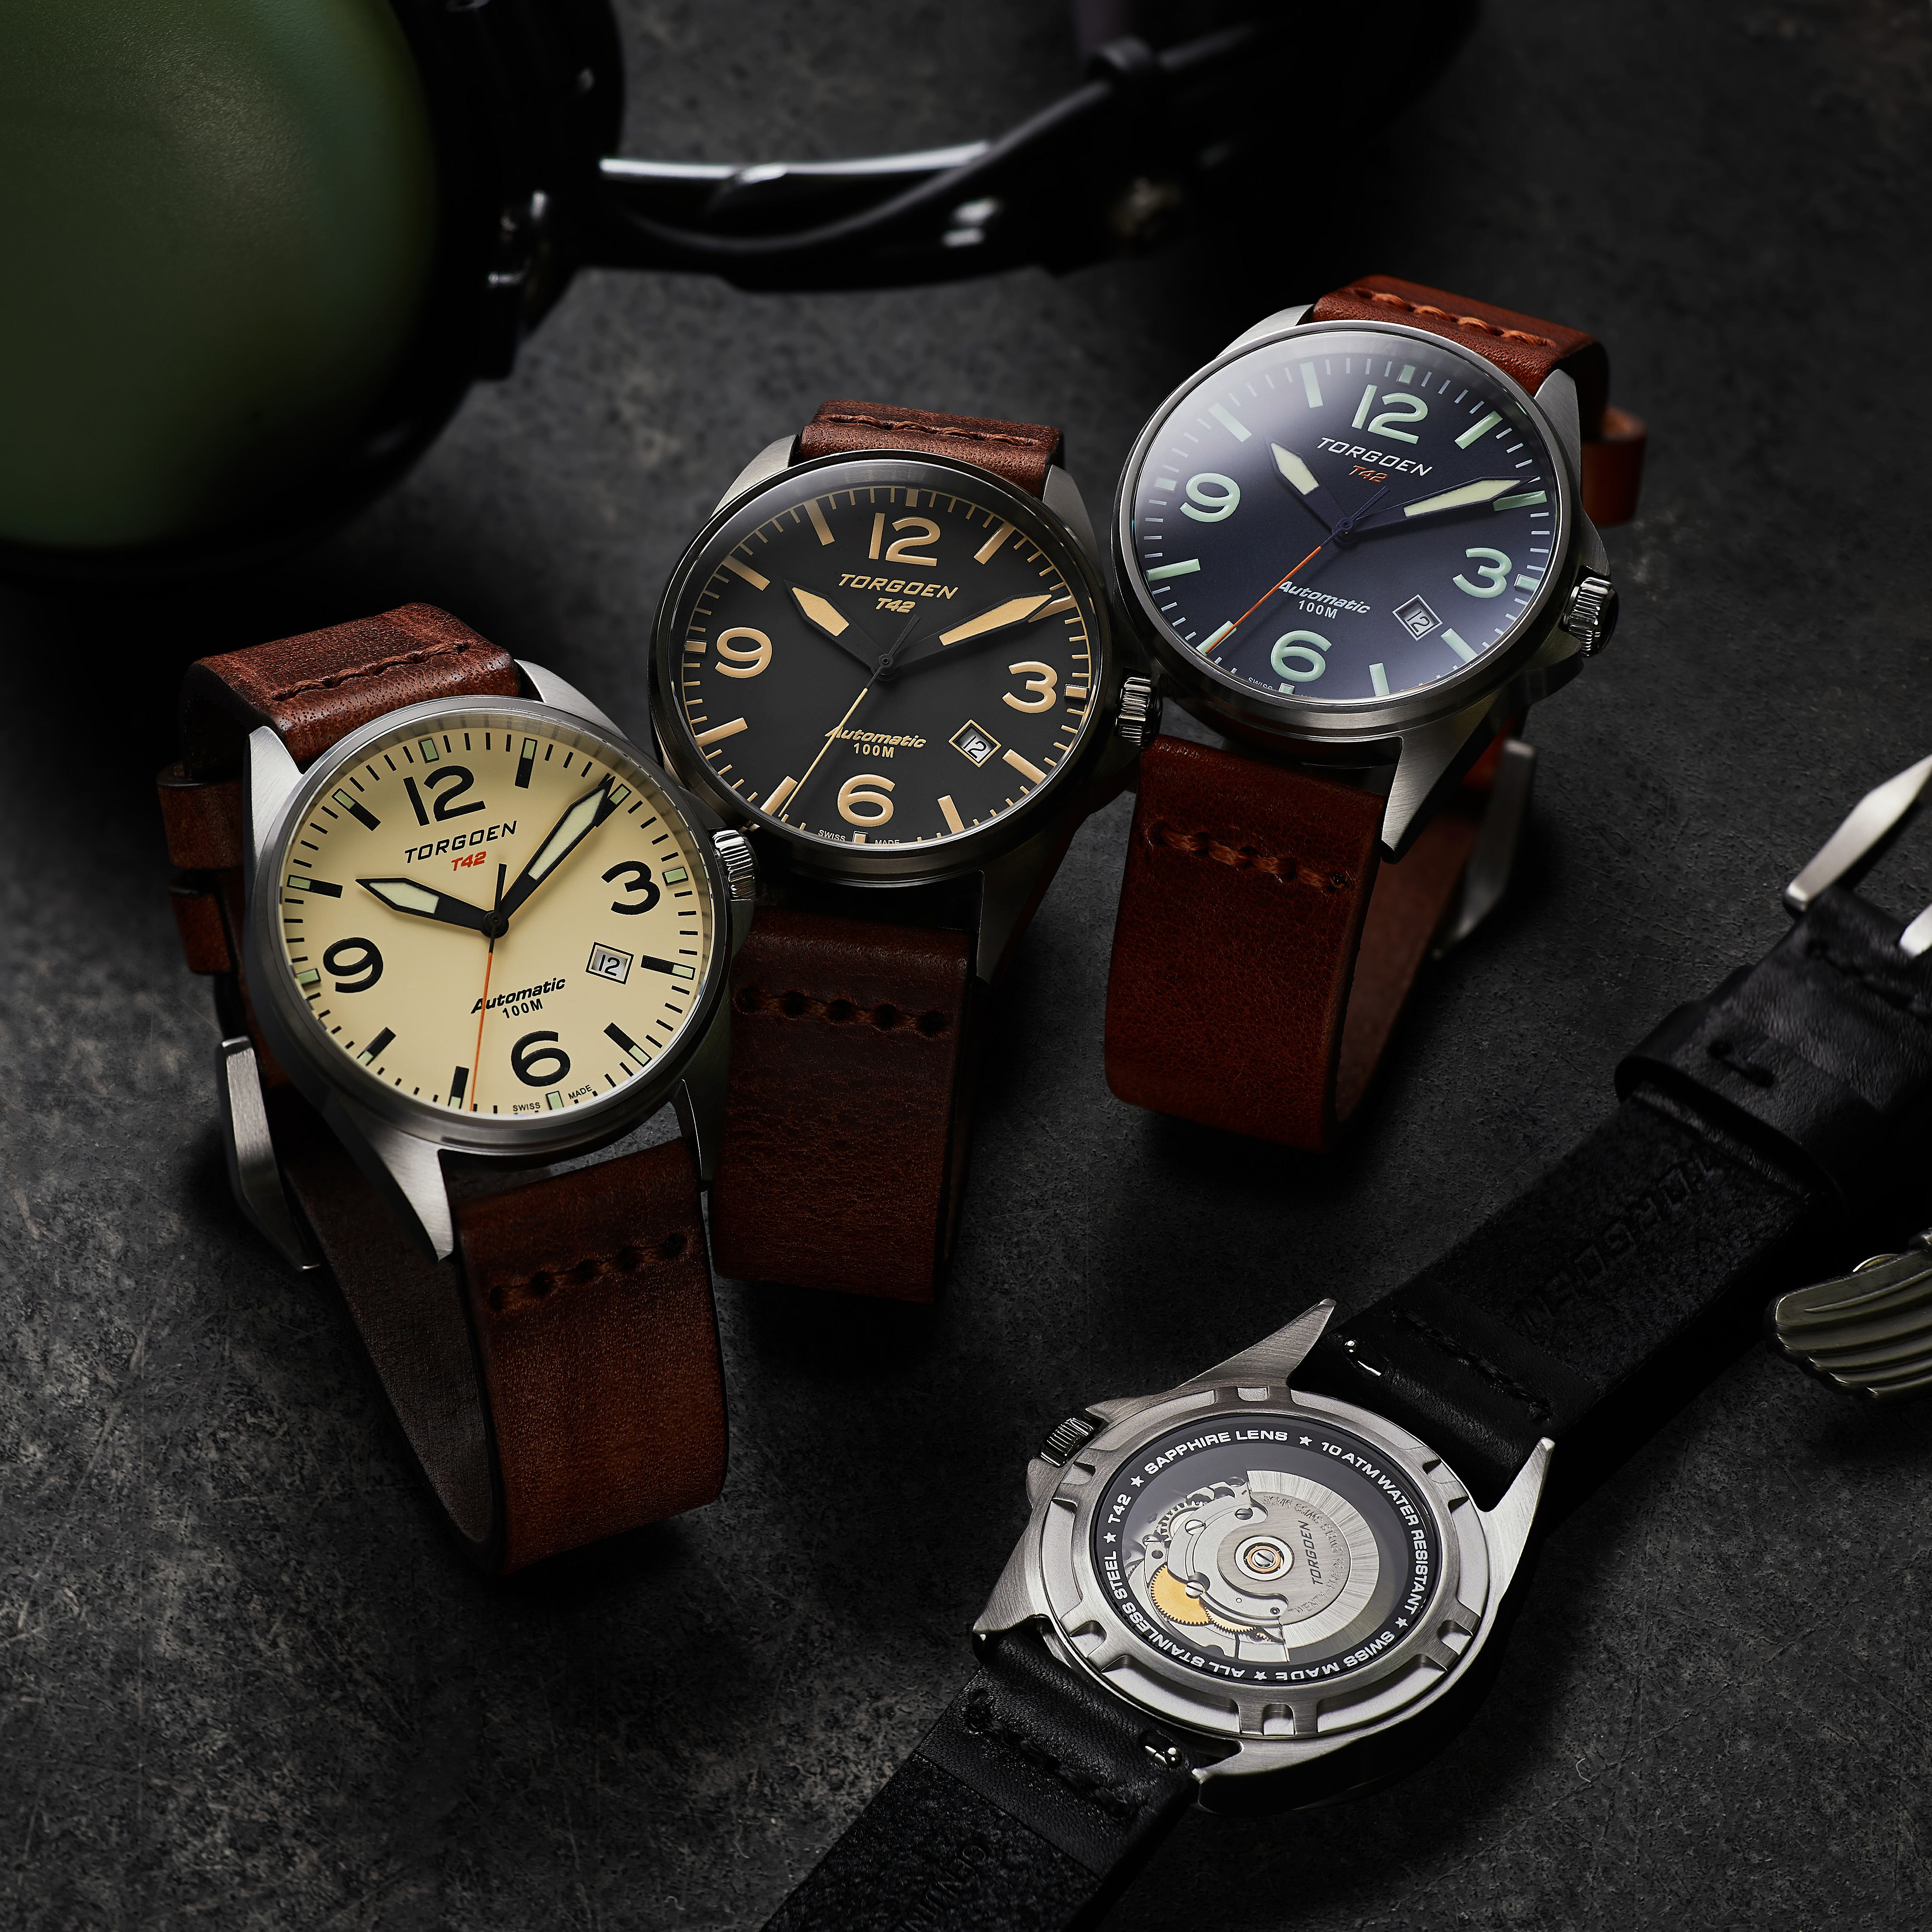 Available in four different colorways, the vintage-inspired design behind the T42 from Torgoen Watches is evident in the sophisticated color combinations on offer.